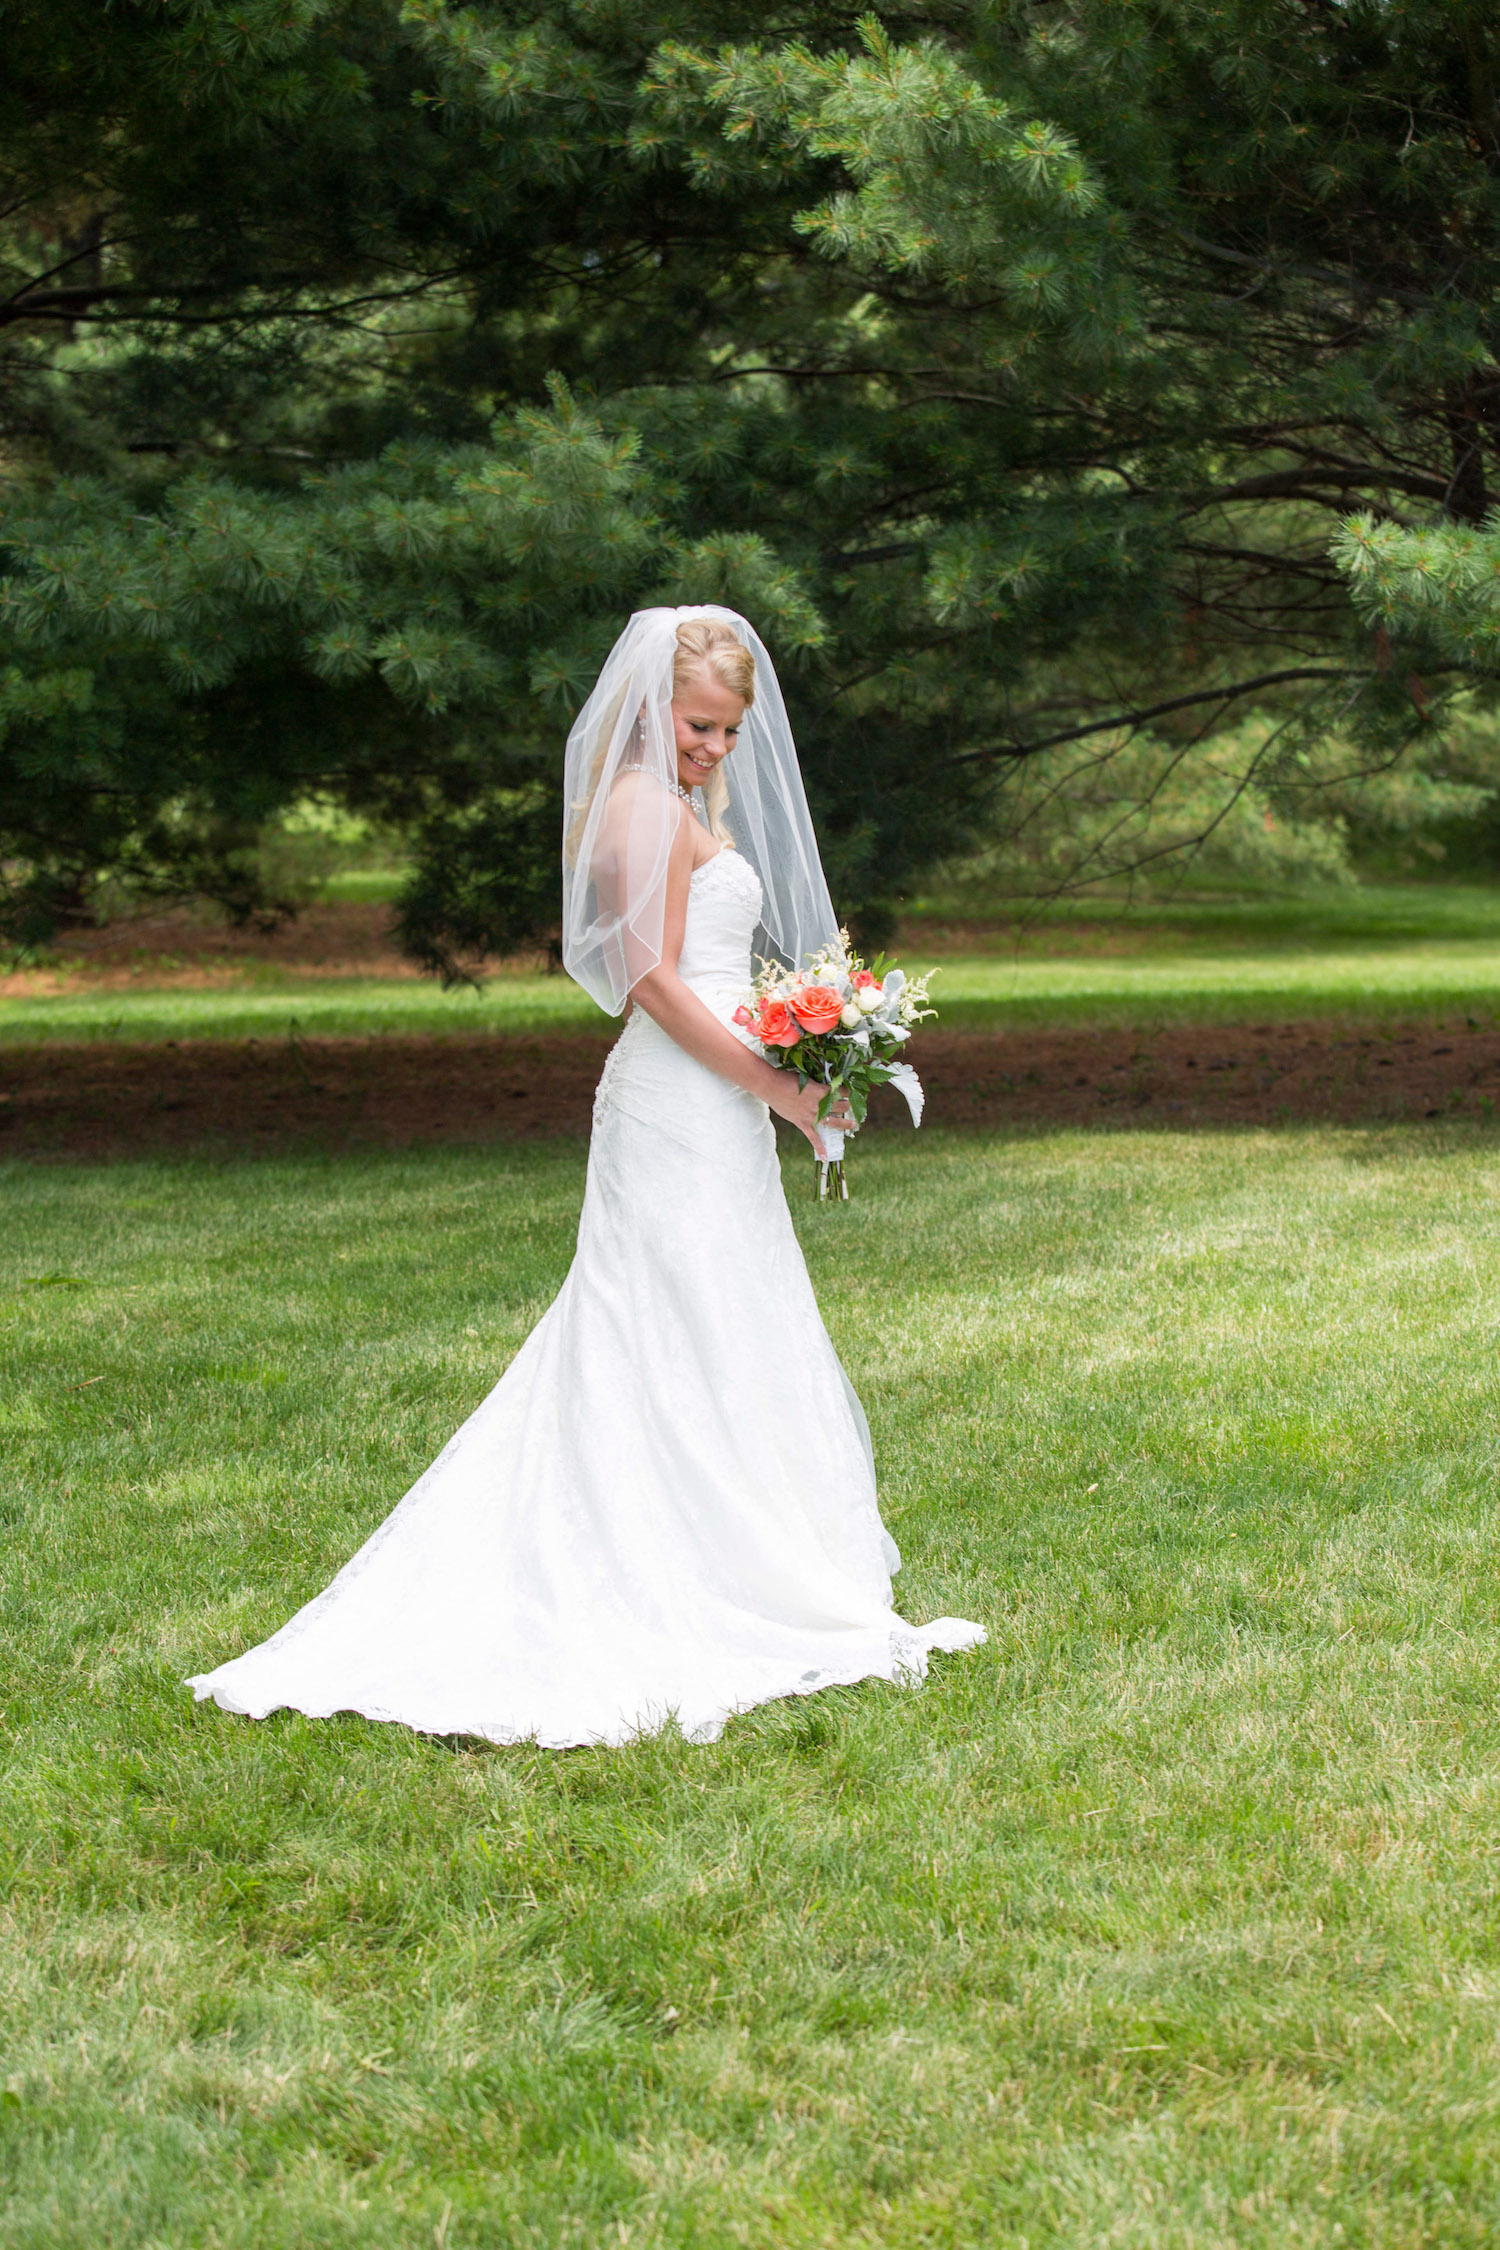 Cindyrellas Garden, outdoor lake ceremony in Minnesota, grassy photo